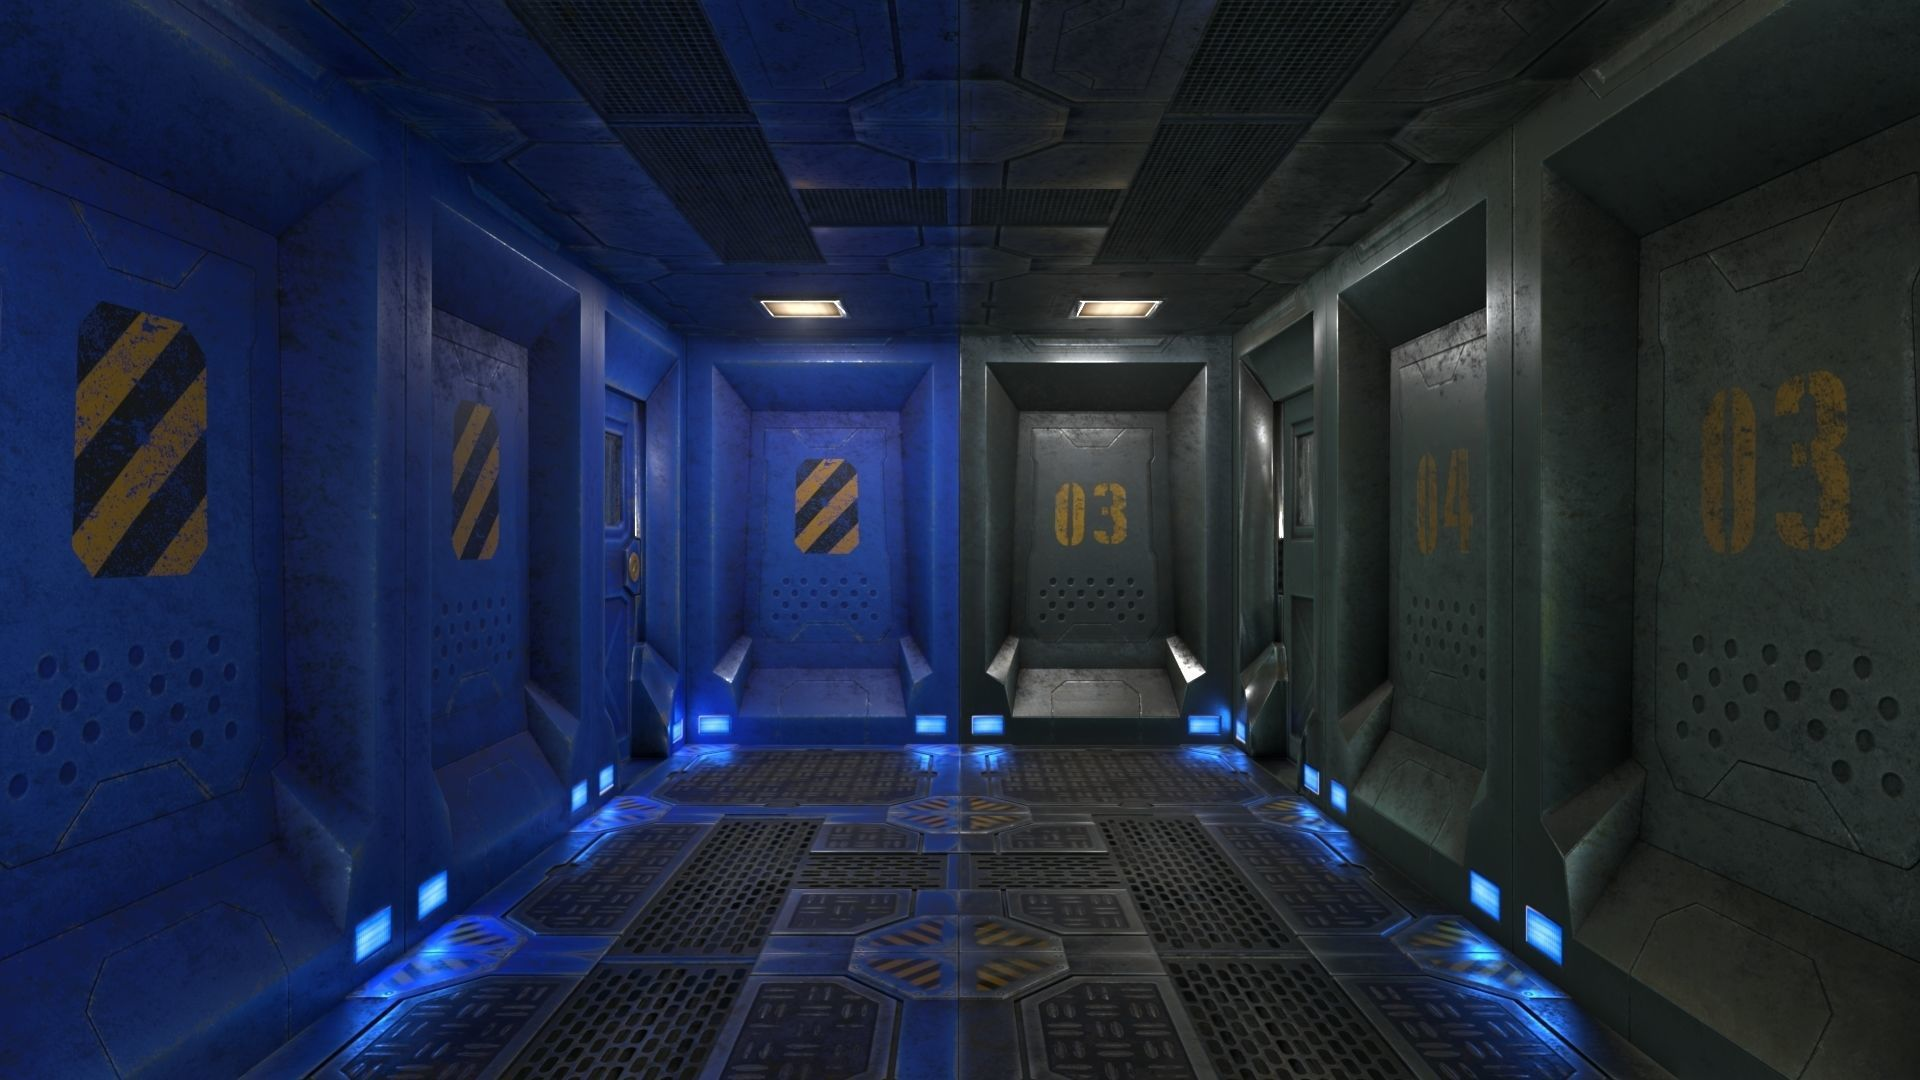 Low Poly Modular SciFi Room With PBR Materials